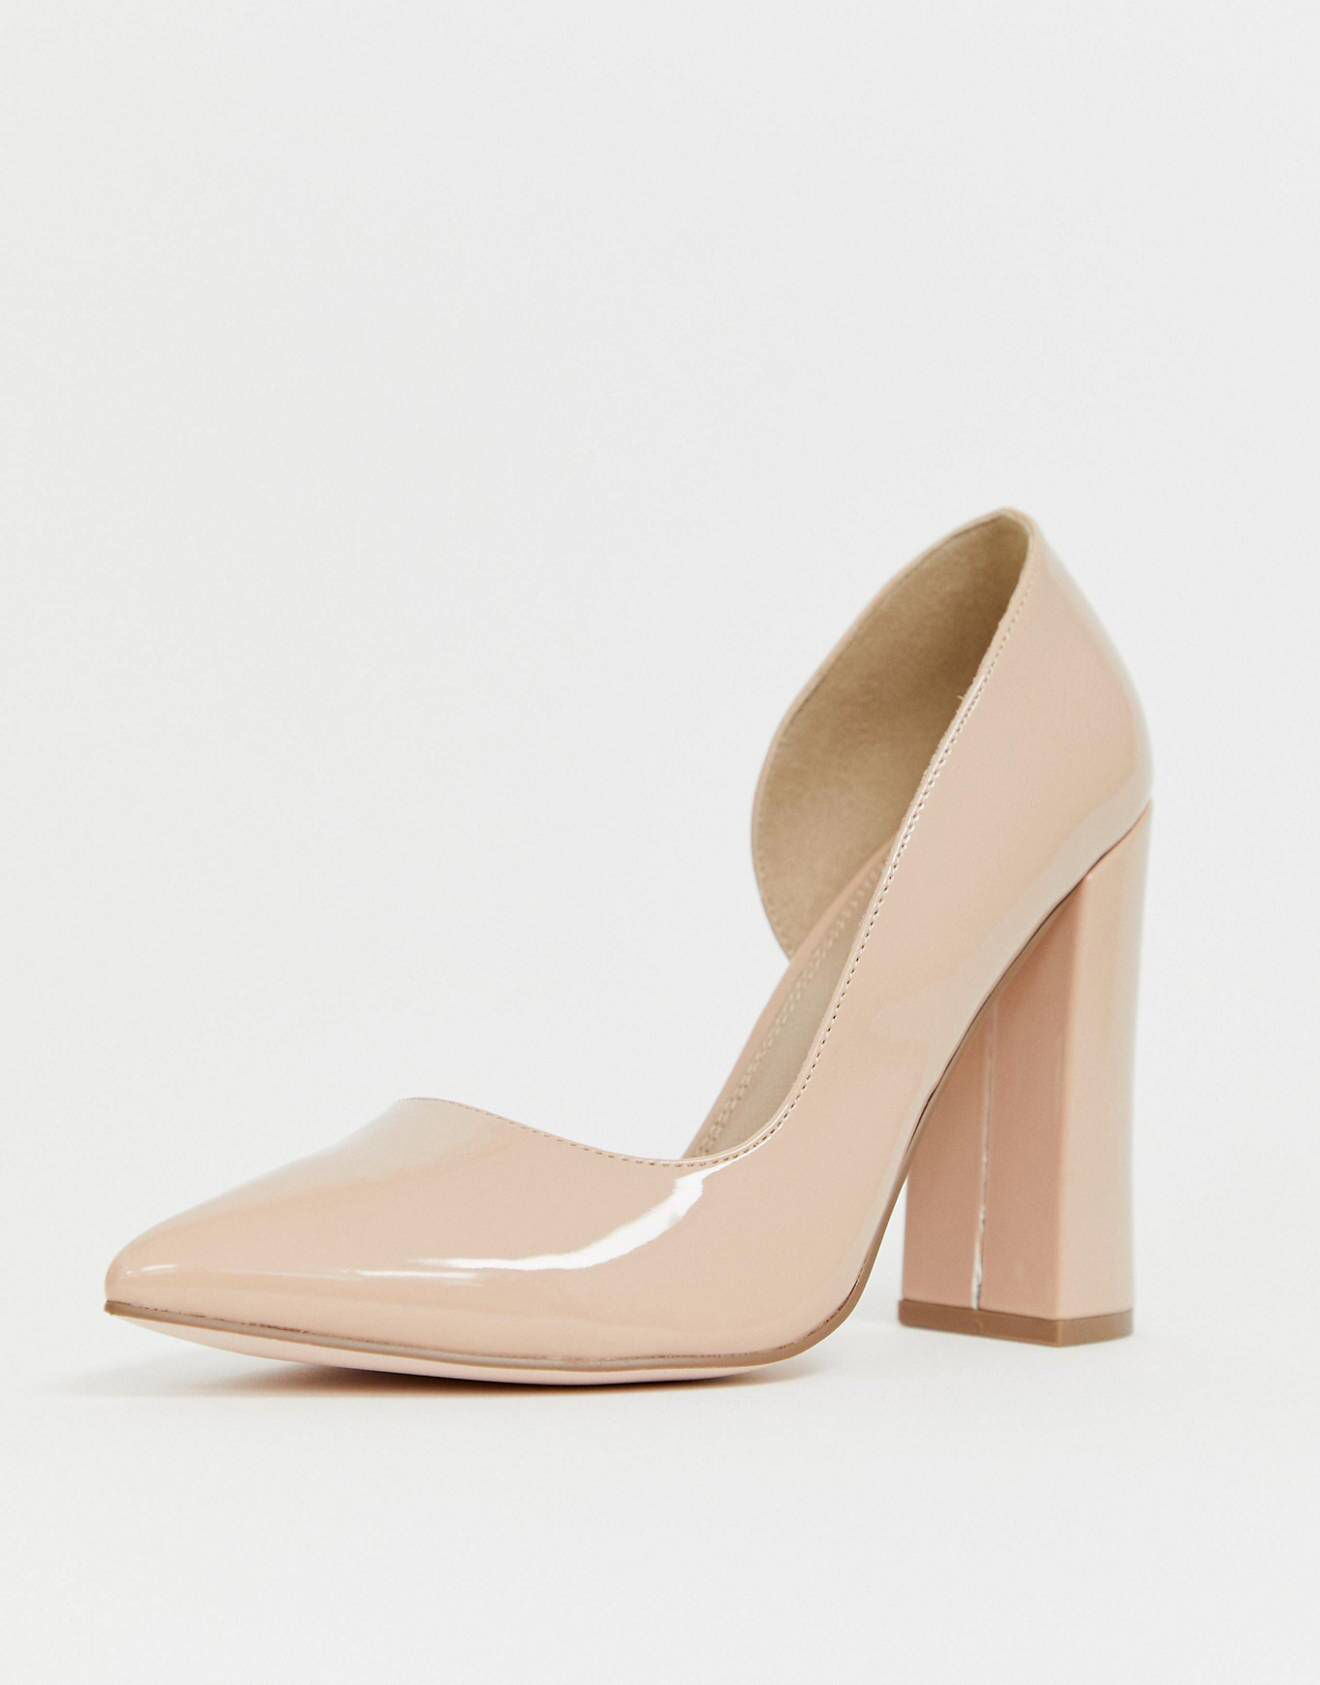 5a08dbe3f4e DESIGN Wide Fit Walter d orsay high heels in almond